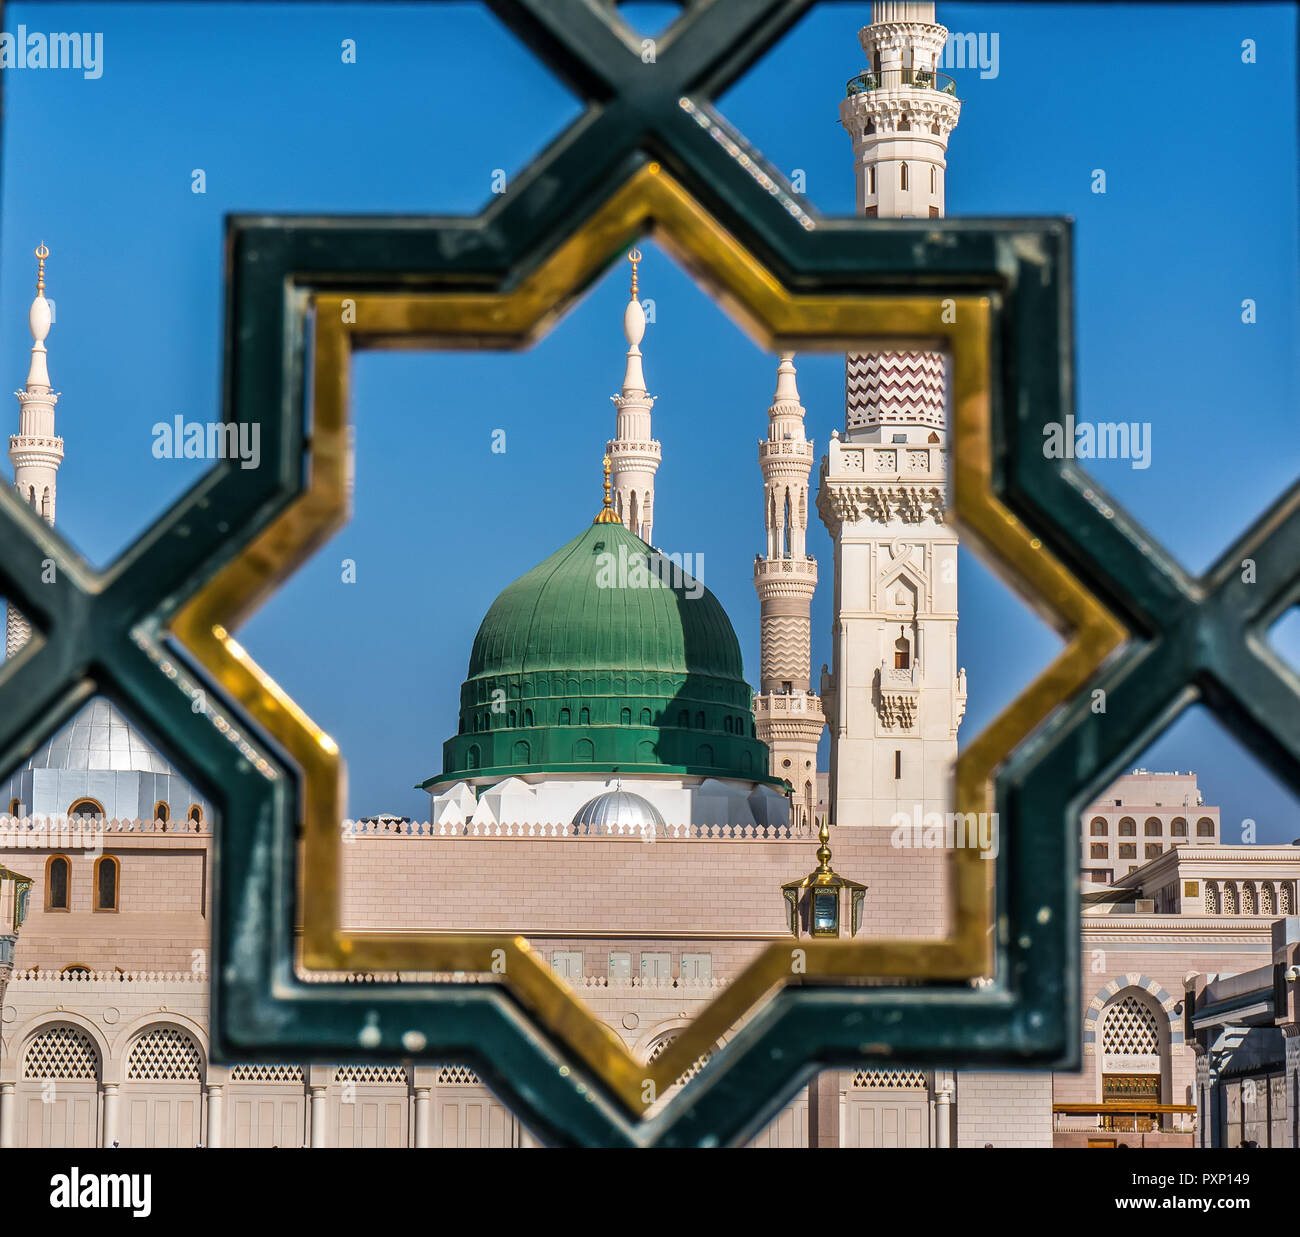 Madinah Gate Mosque High Resolution Stock Photography And Images Alamy